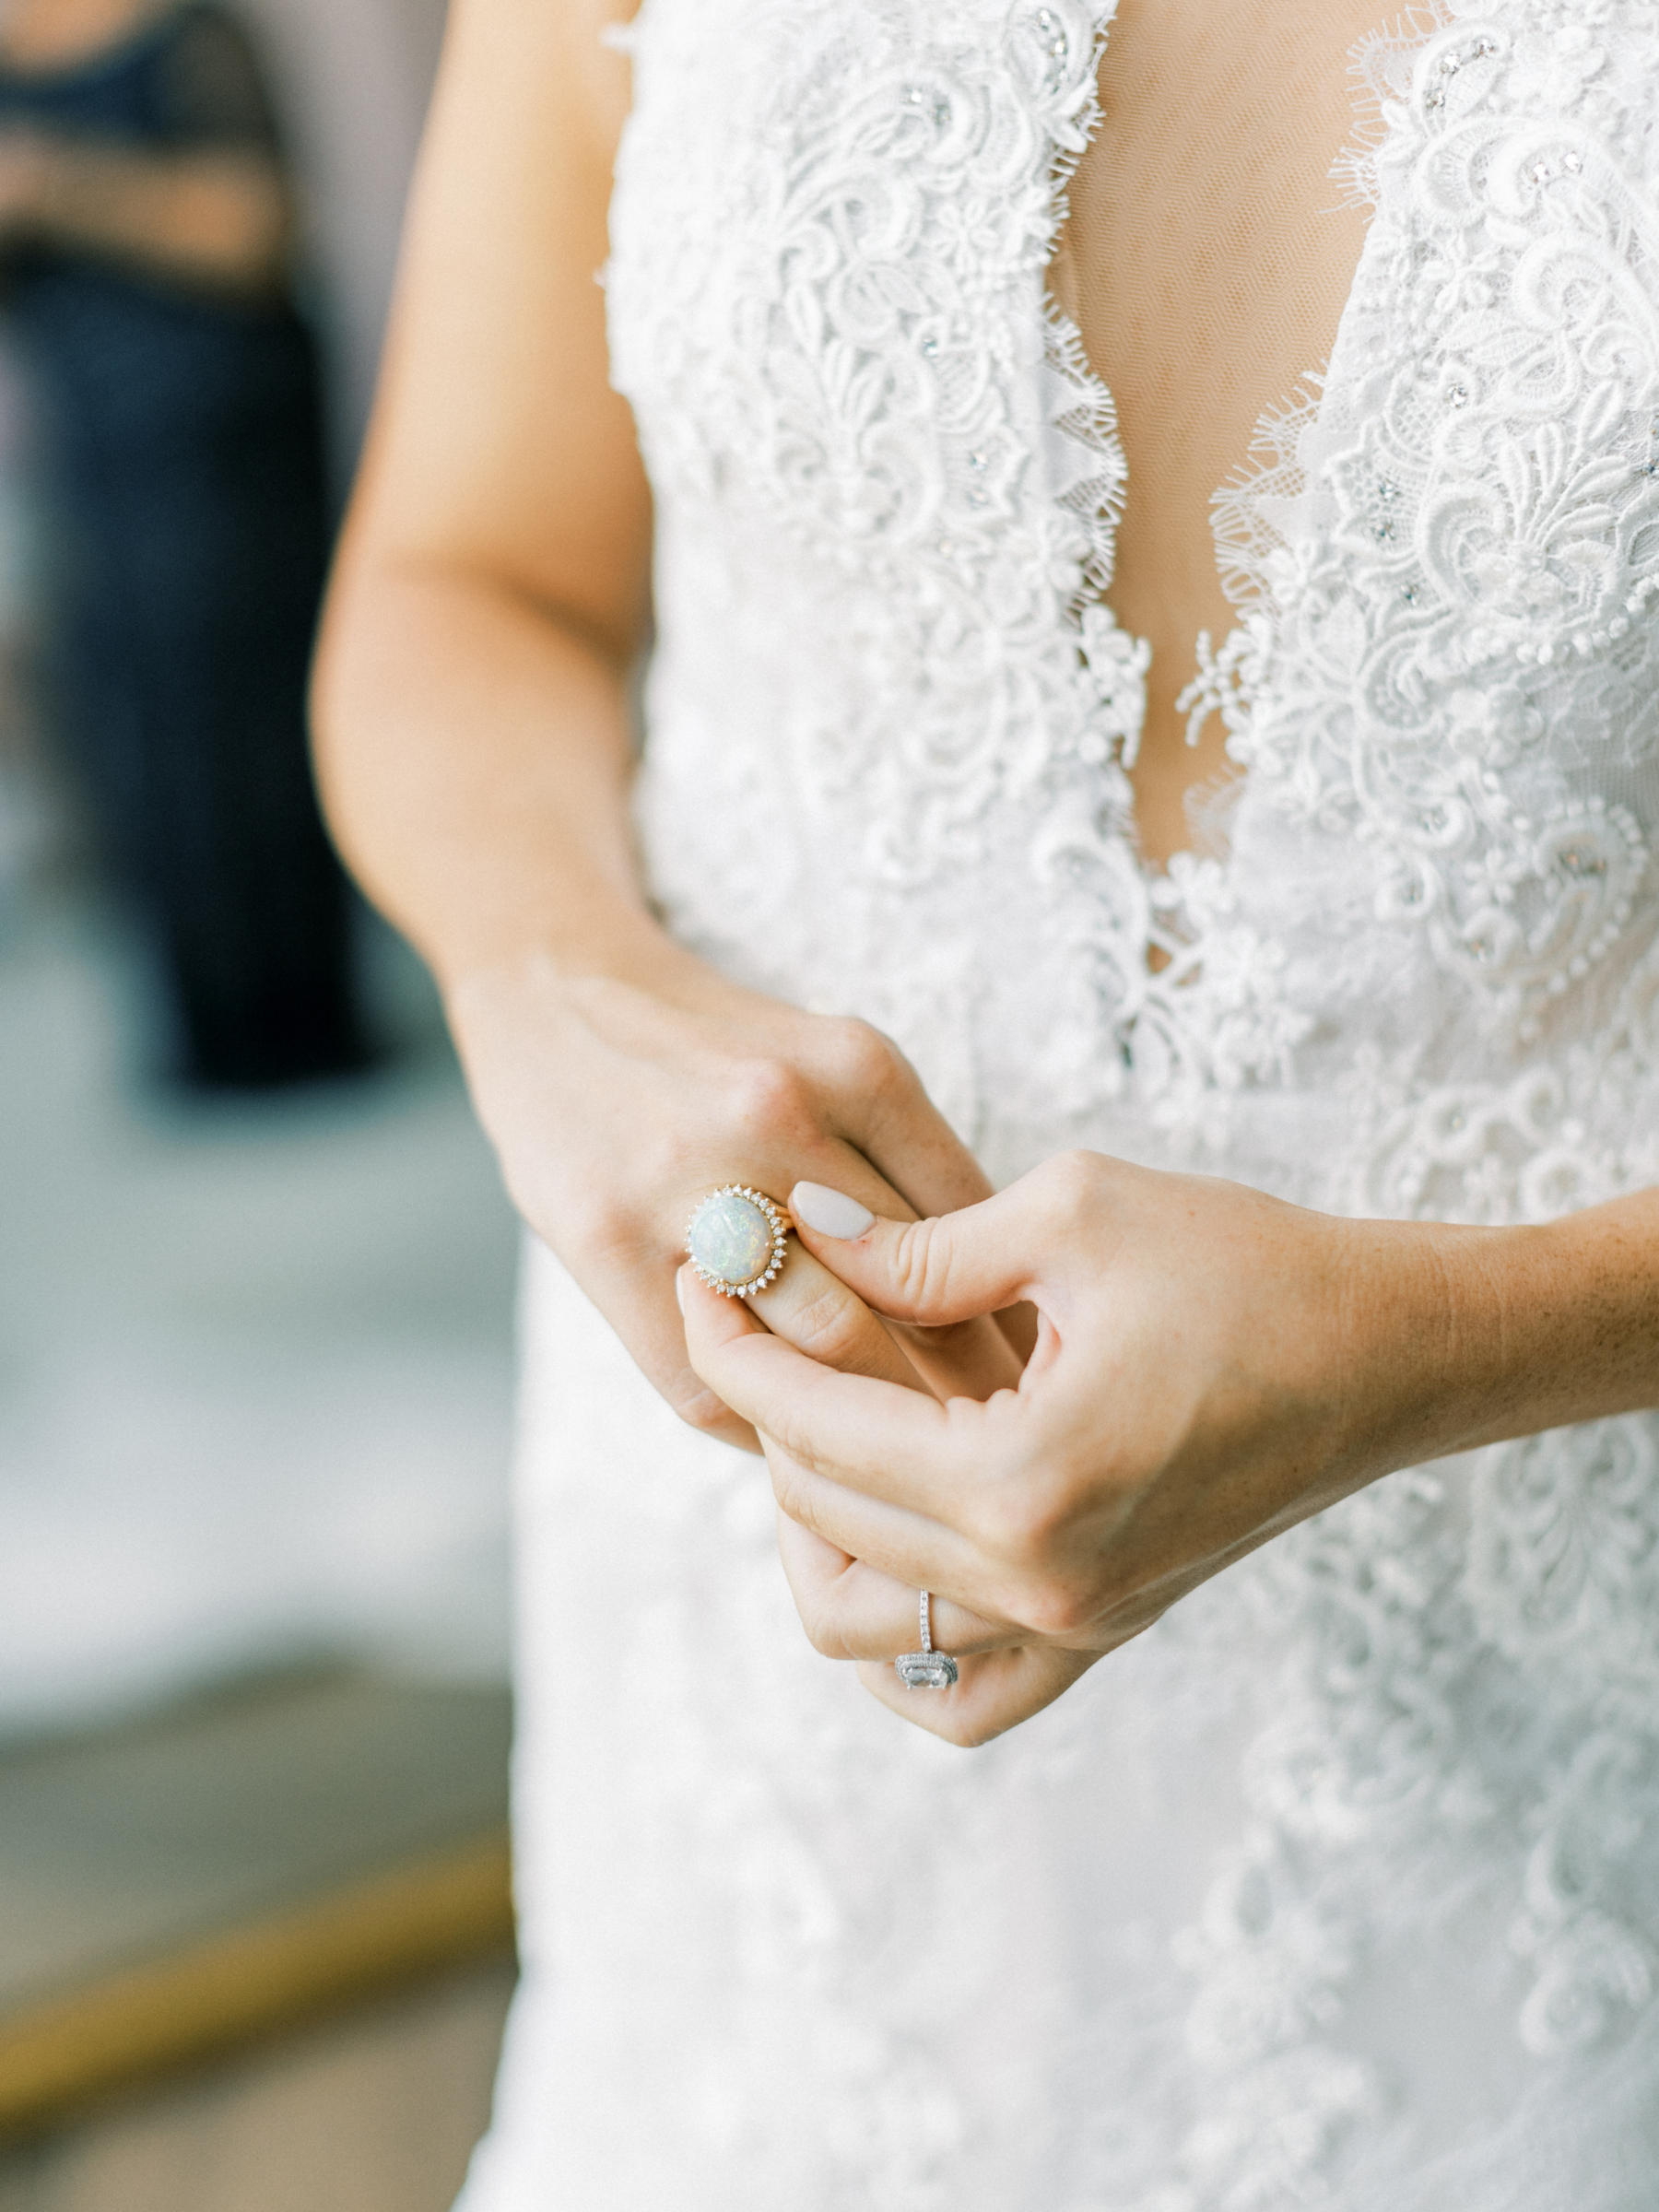 Lace wedding dress and accessories